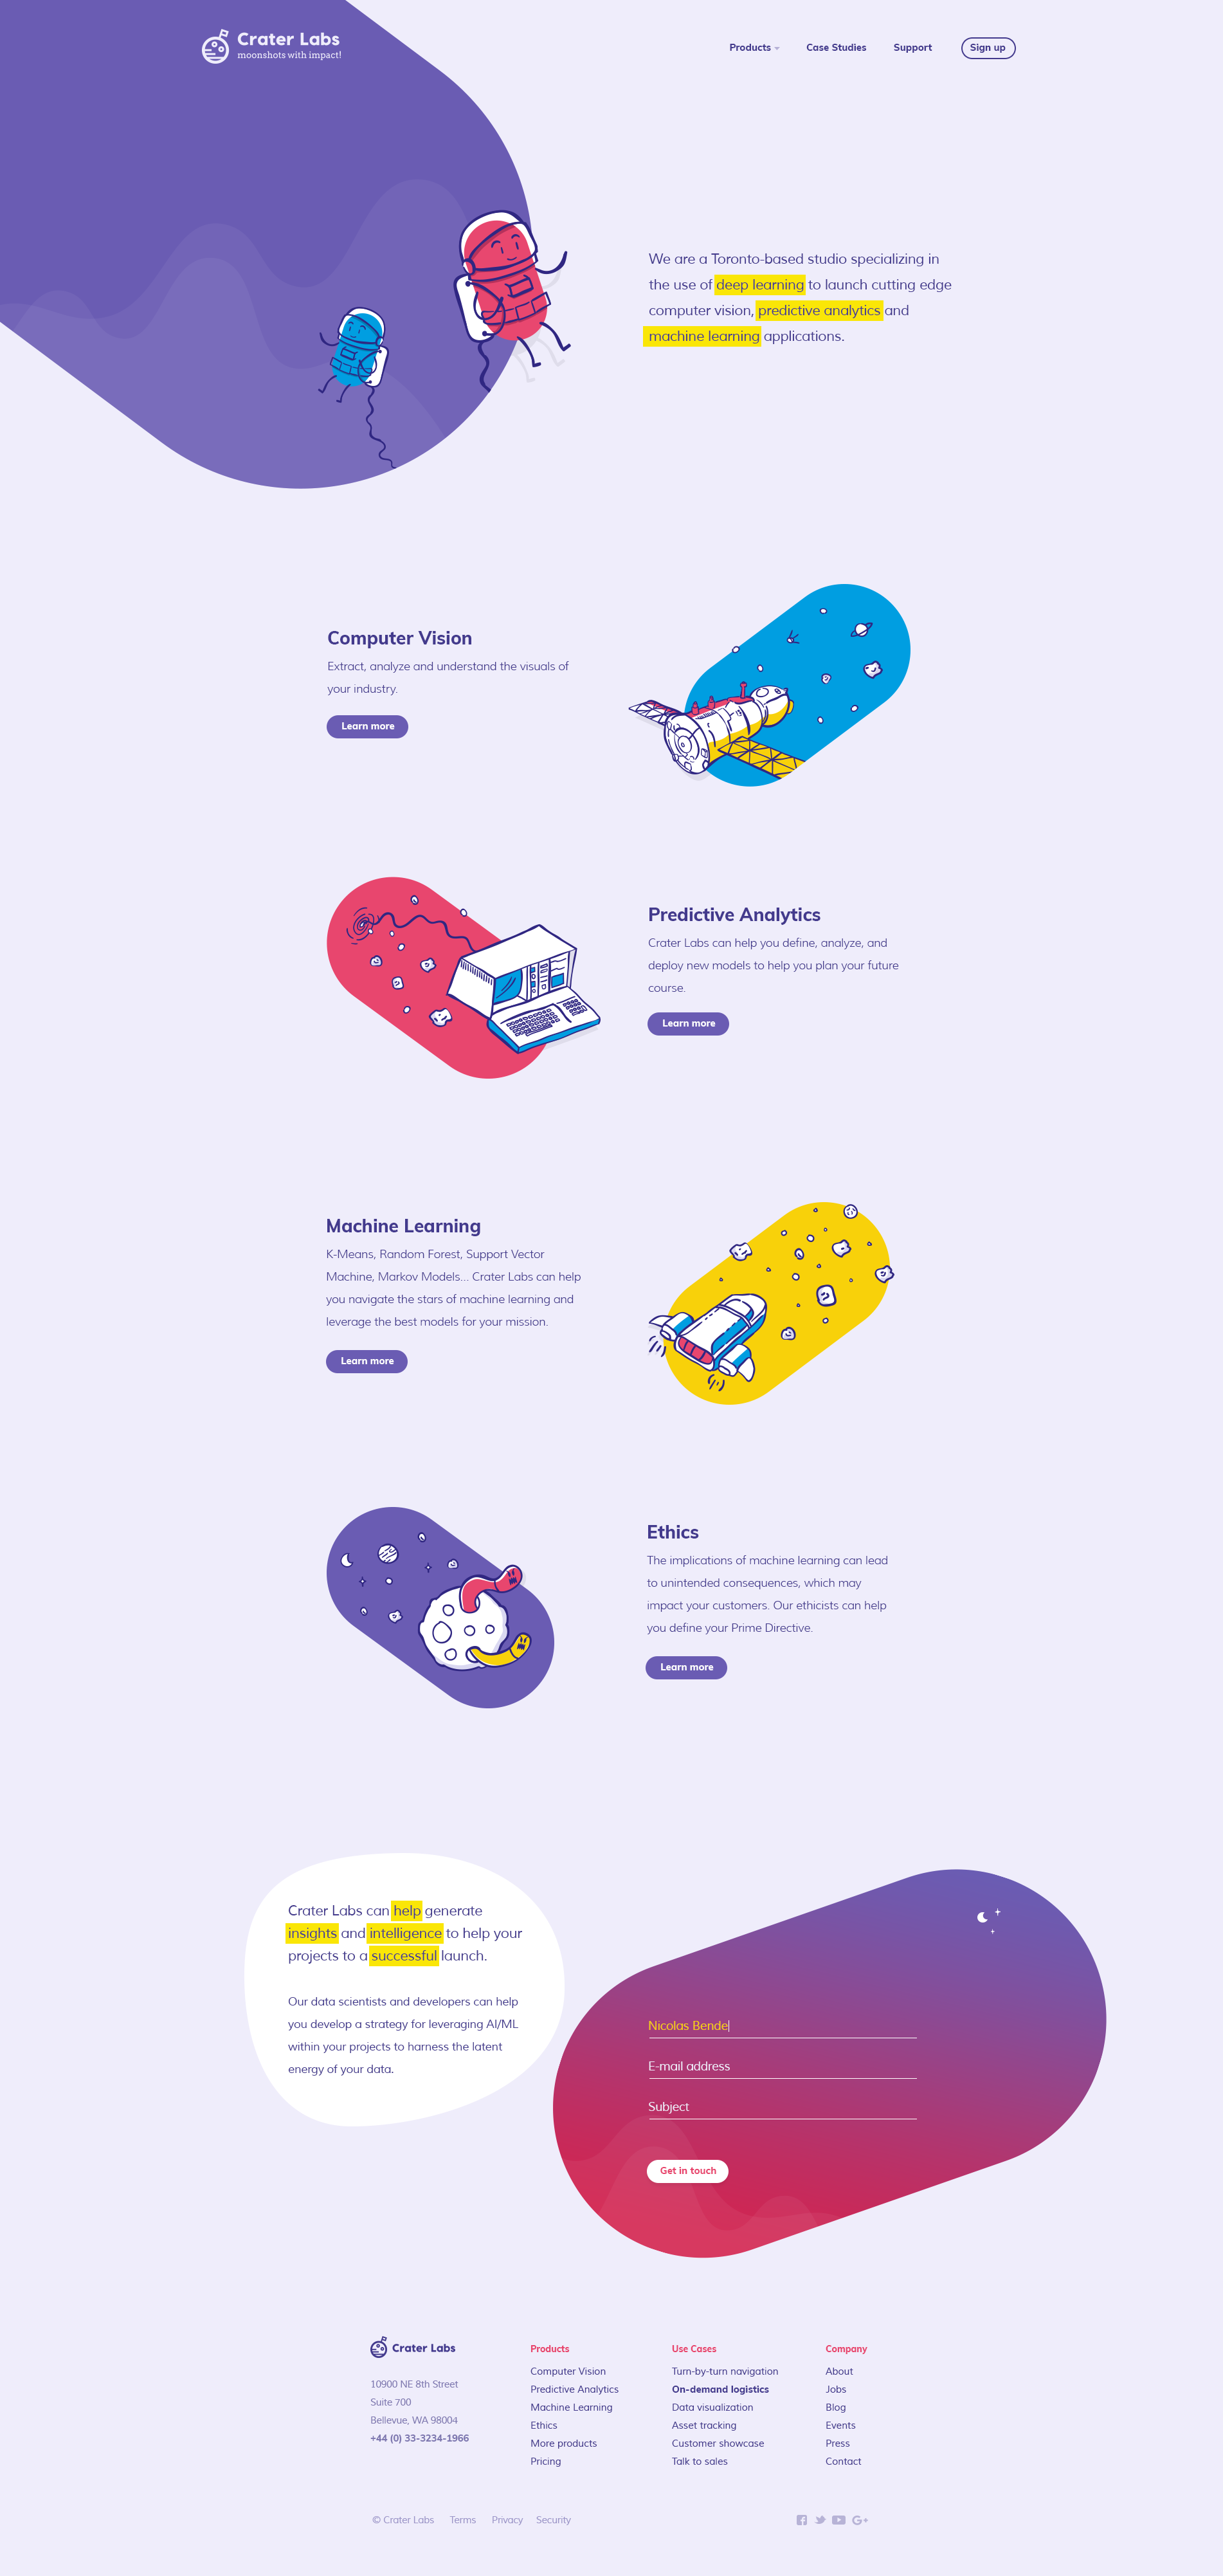 9 cutting-edge web design trends for 2018. A landing page by SixDesign featuring custom illustrations and gradient color transitions. #2018designtrends #webdesigntrends #graphicdesigntrends